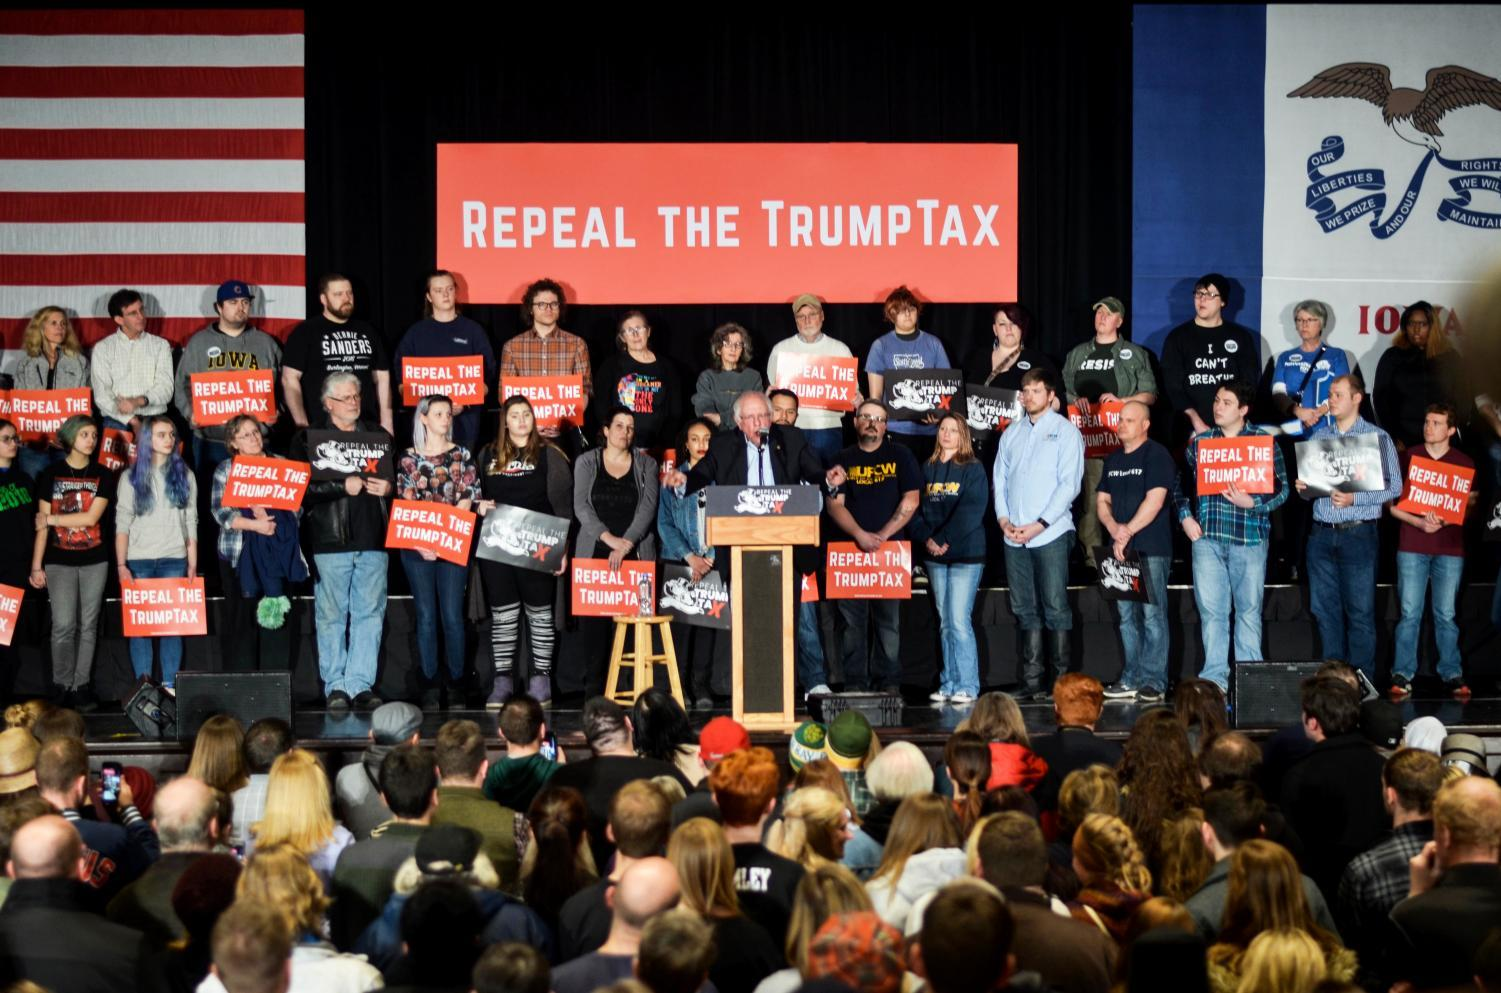 Senator Bernie Sanders meets with Iowans in Cedar Rapids on Friday, Feb. 23 to advocate for repealing President Donald Trump's tax plan.